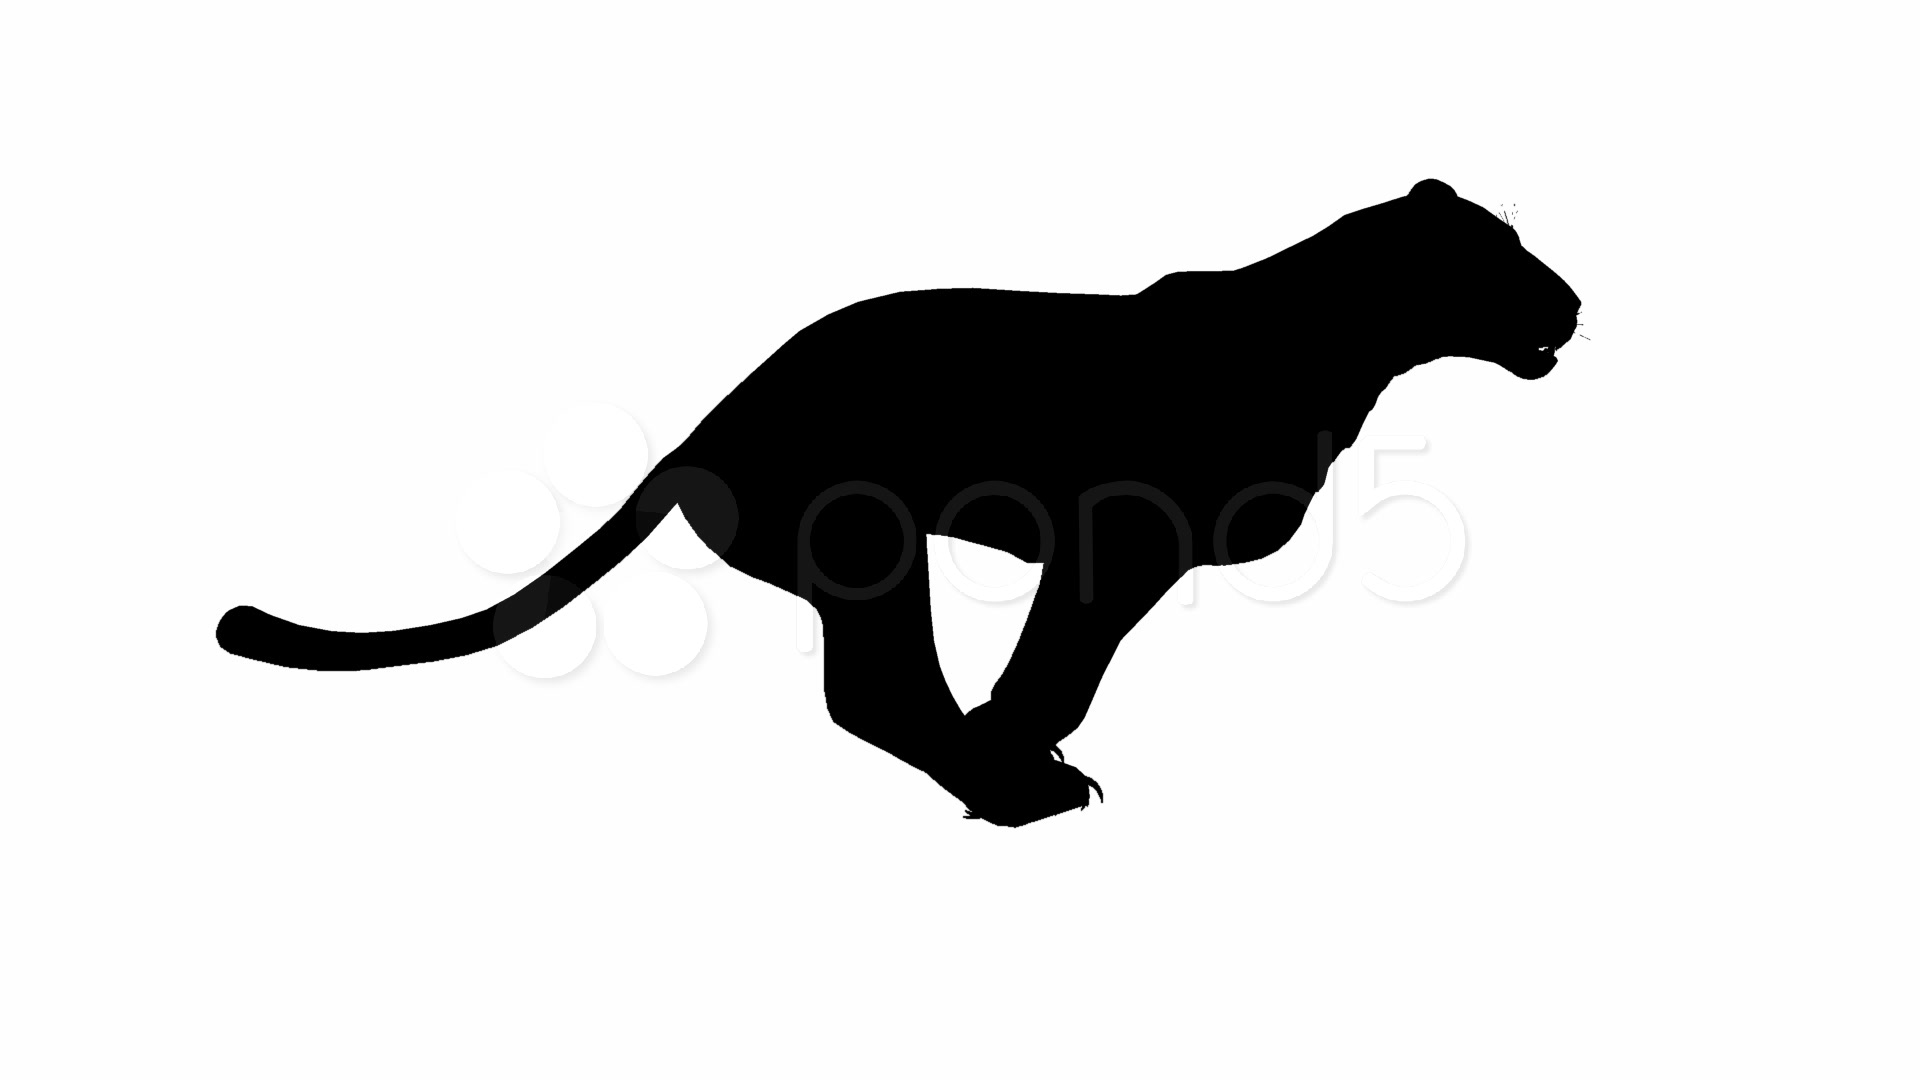 1920x1080 Looping Jaguarpantherleopardpuma Animation With Silhouette